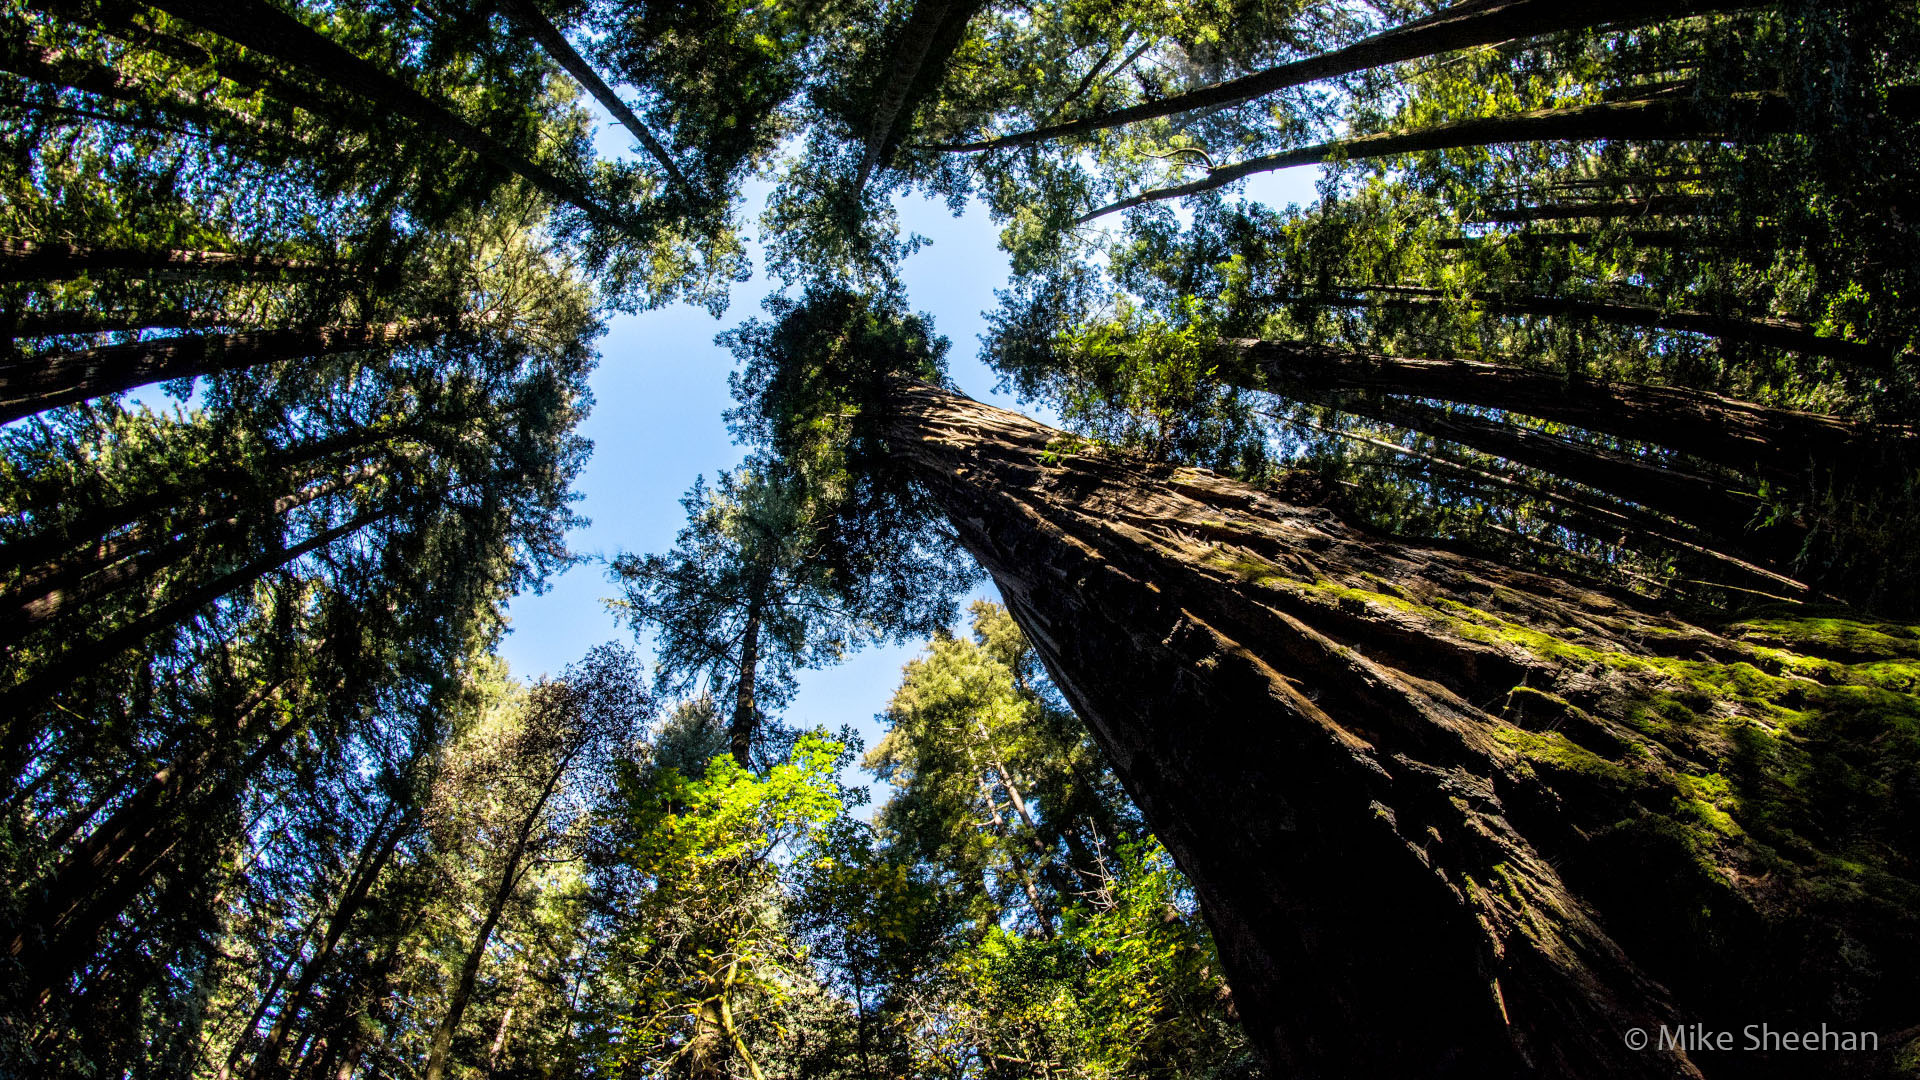 Redwood trees by Mike Sheehan